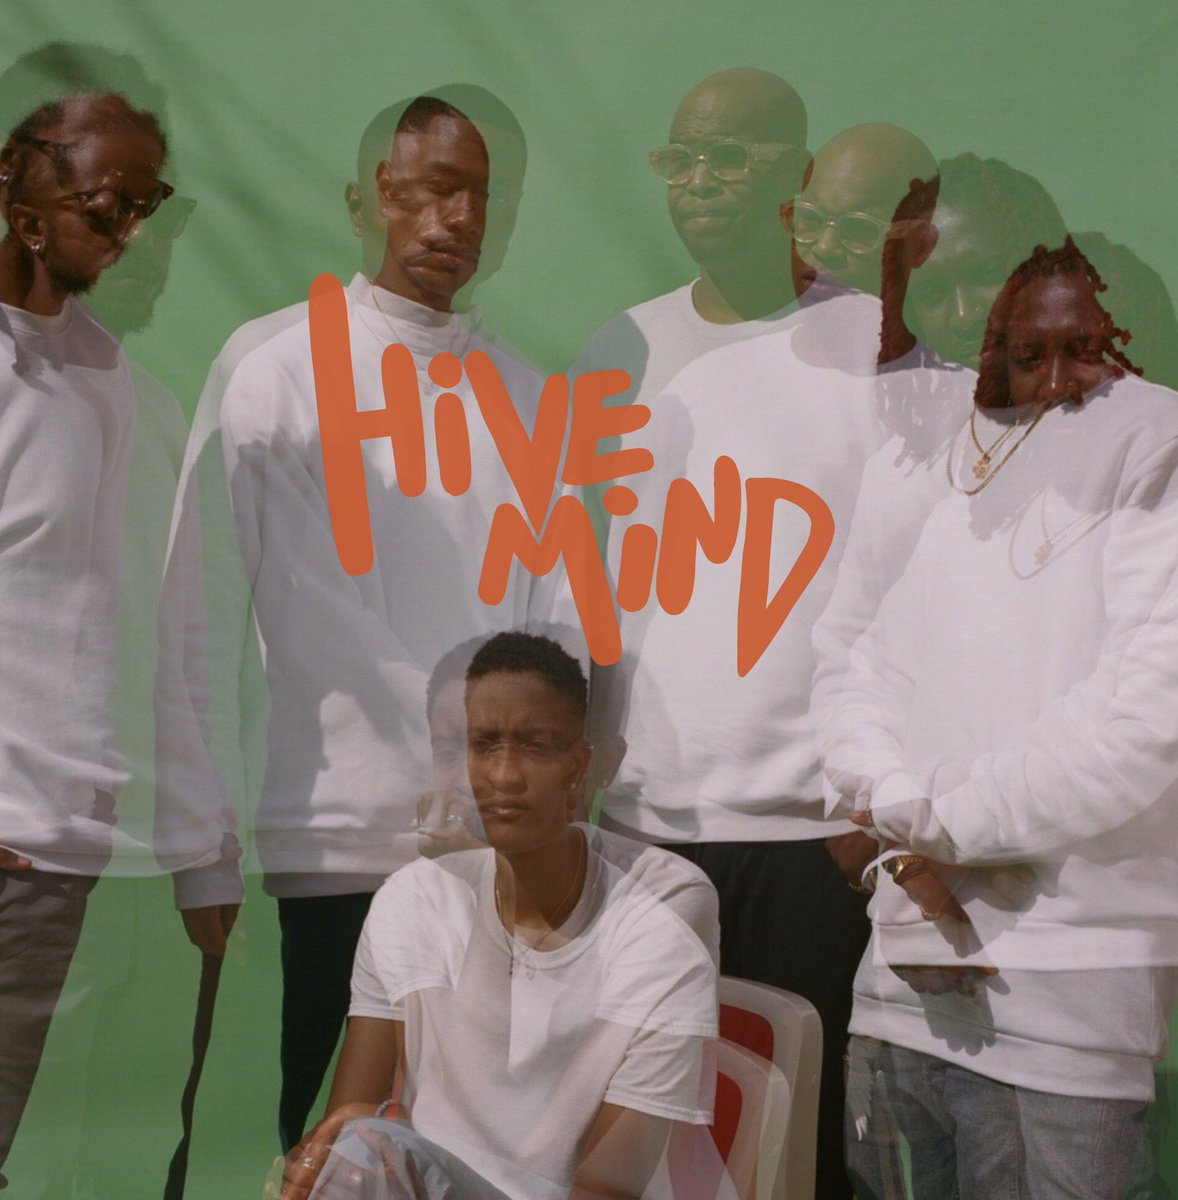 HIVE MIND OUT NOW smarturl.it/hivemindalbum